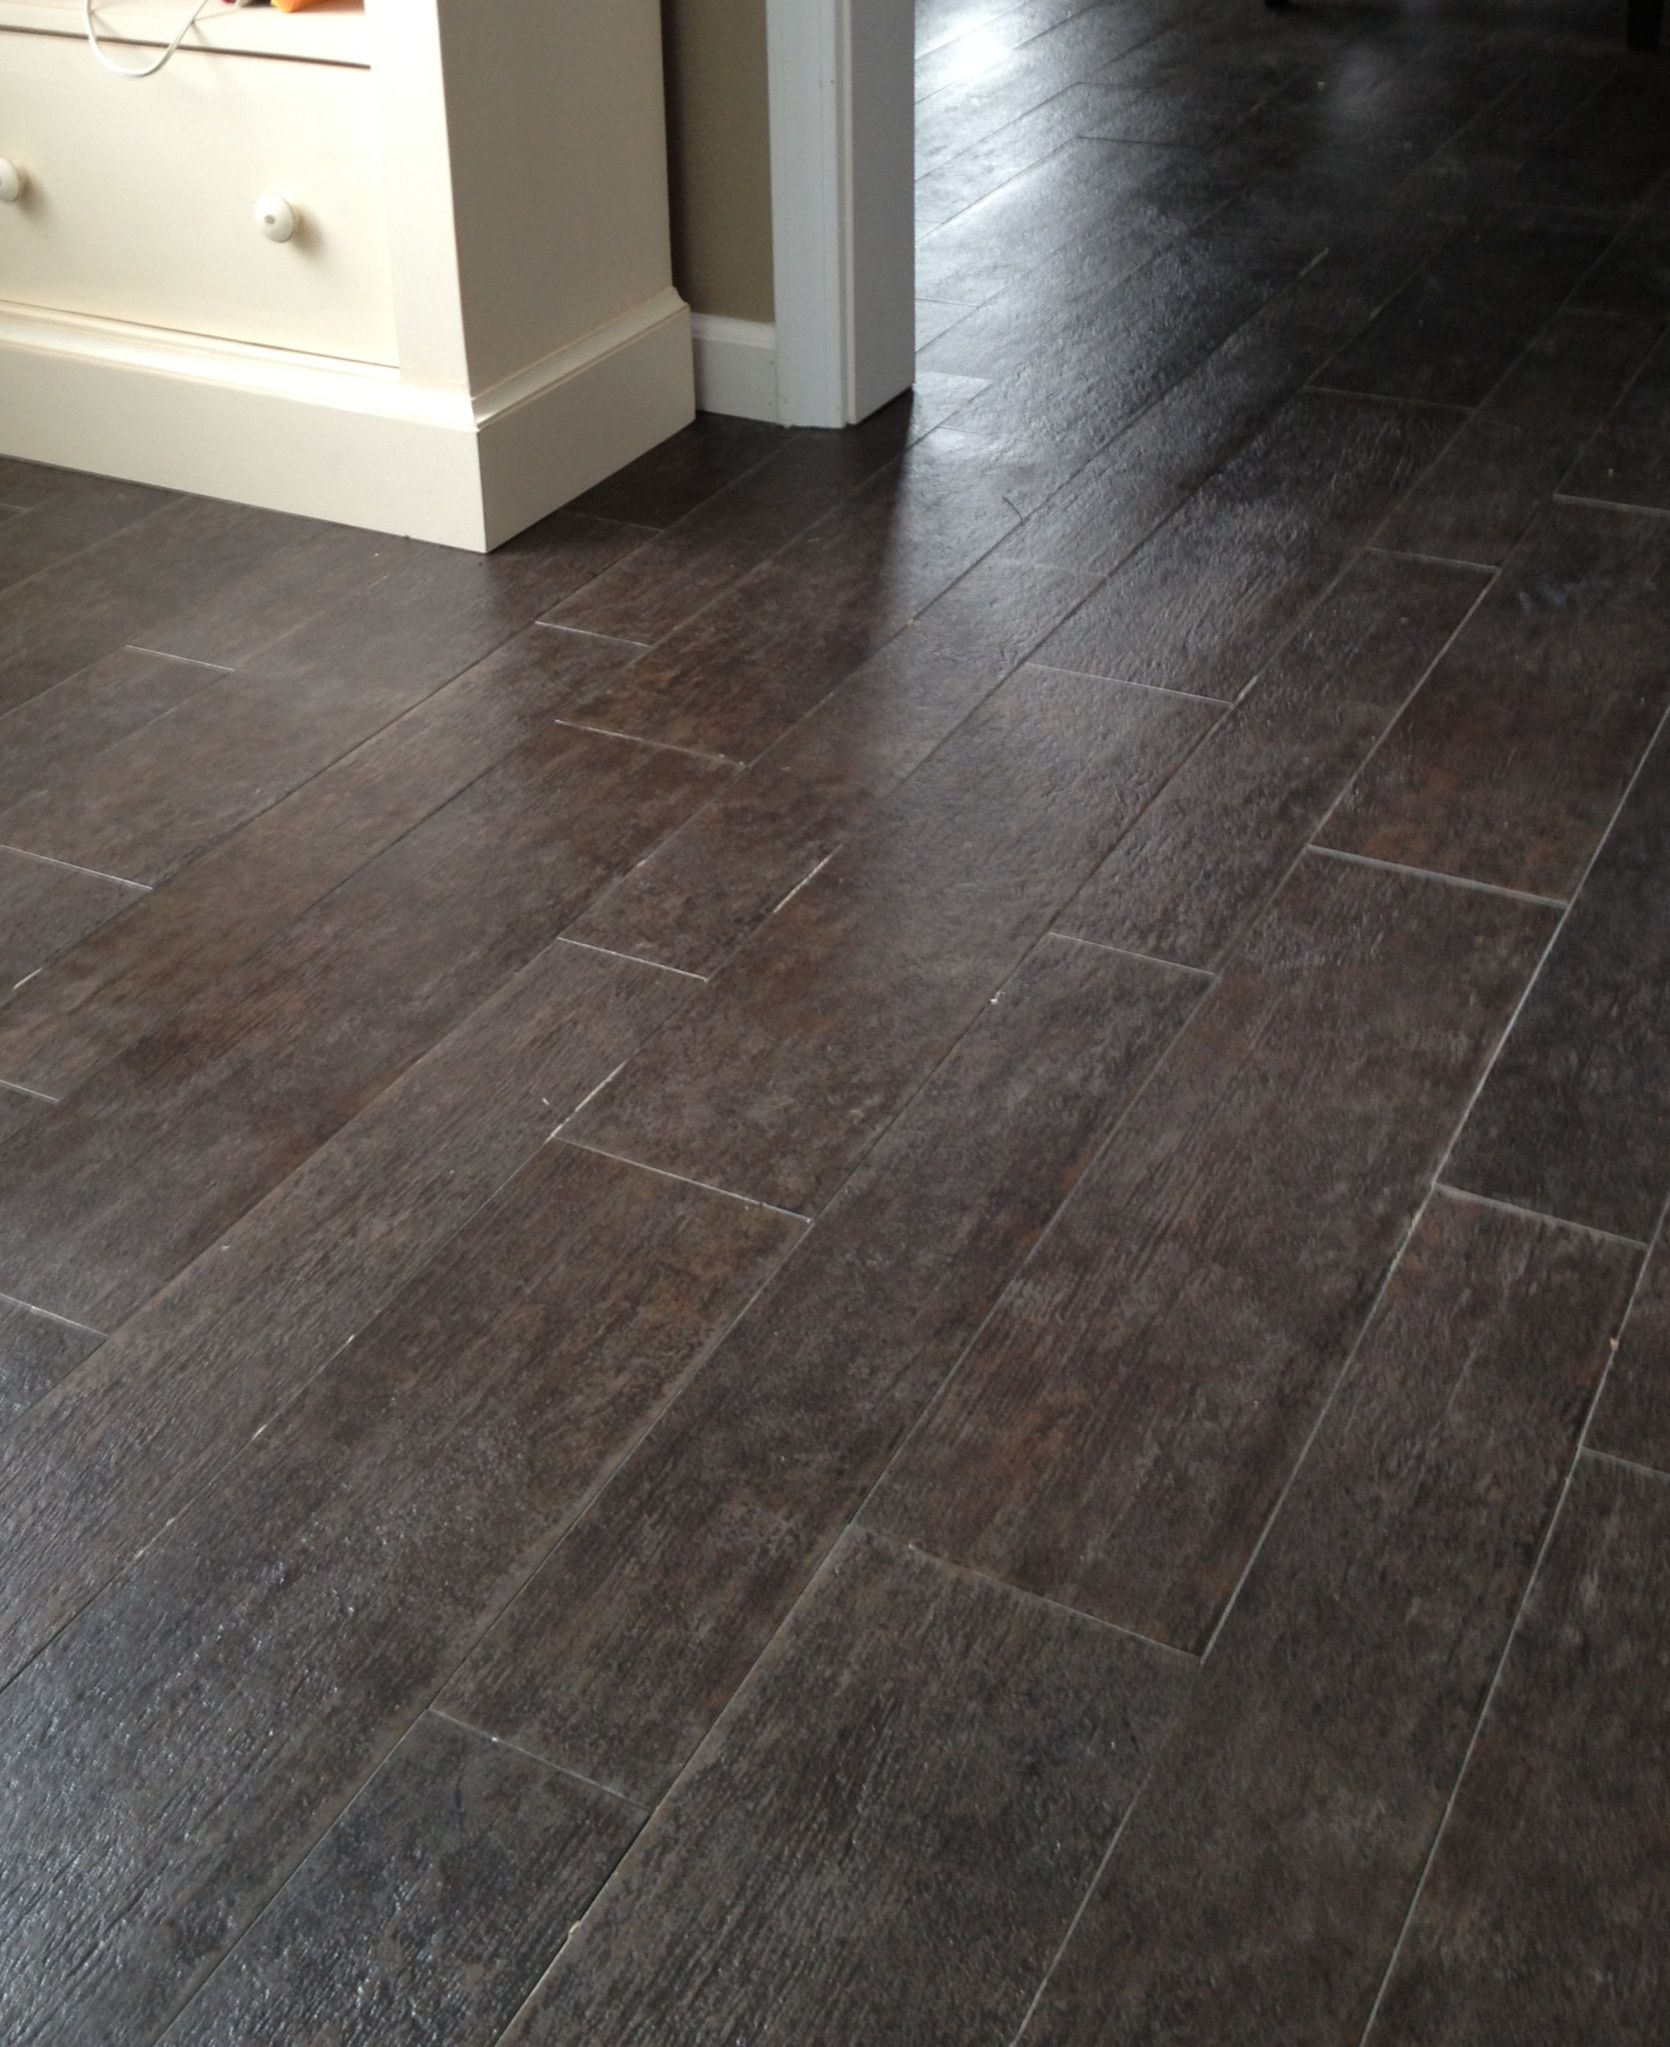 Marazzi tile planks yes its tile not hardwood in ebony Marazzi tile